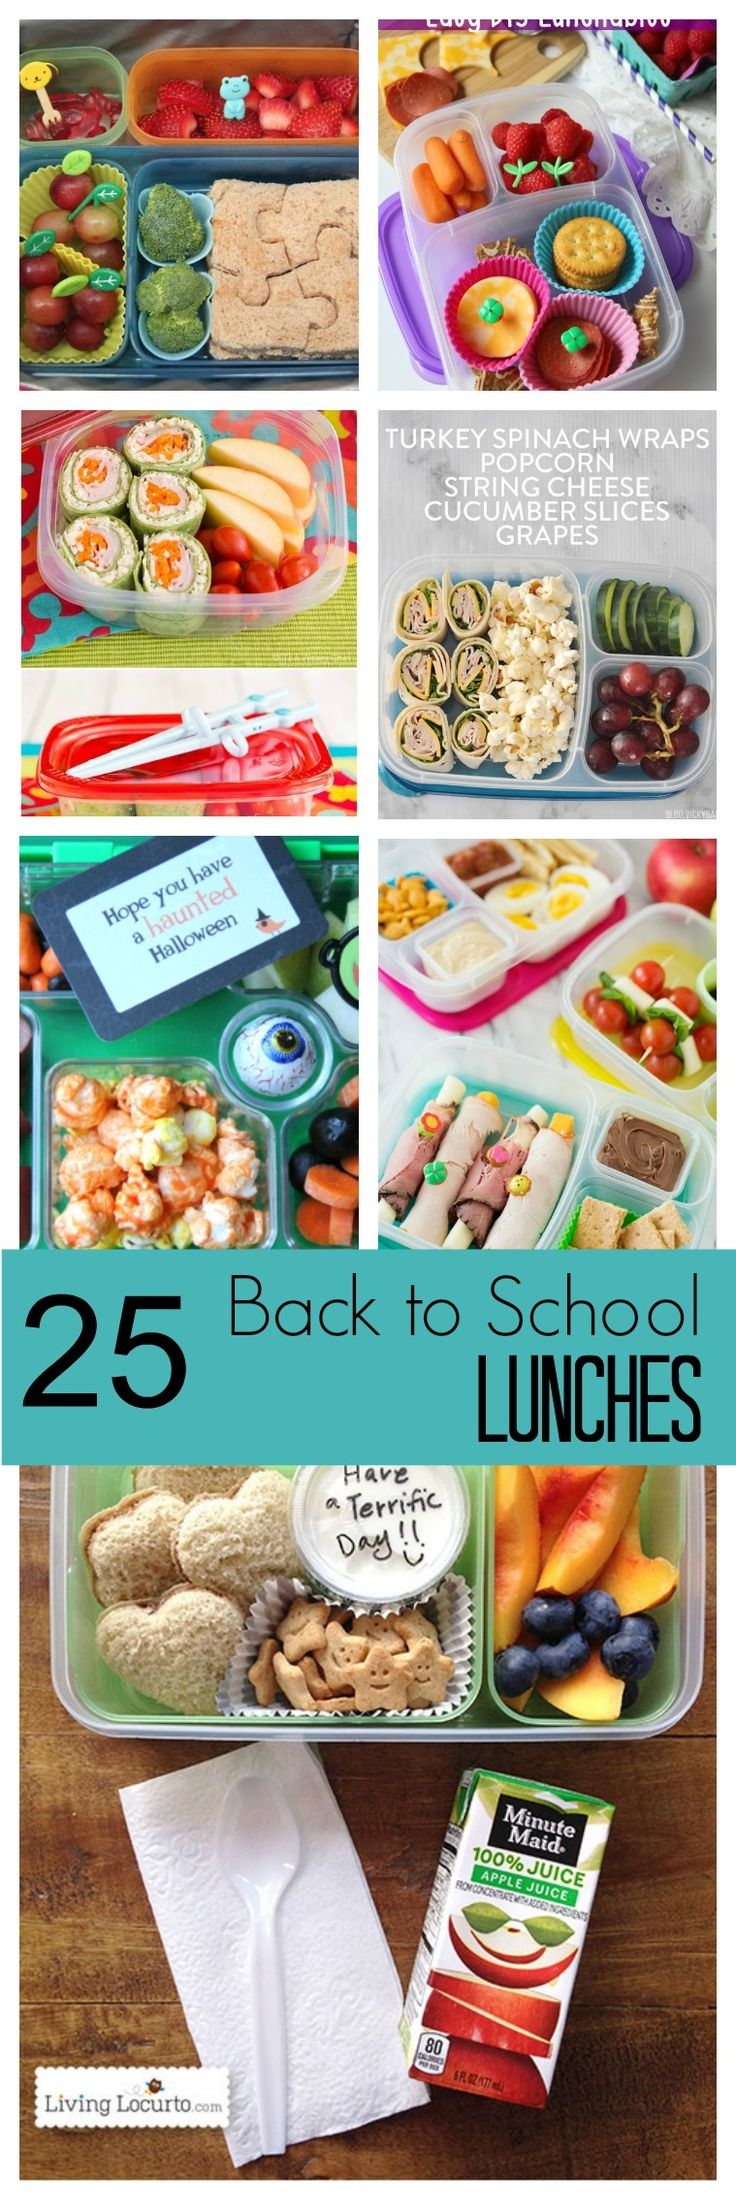 430 best Celebrate Back to School! images on Pinterest | Healthy ...